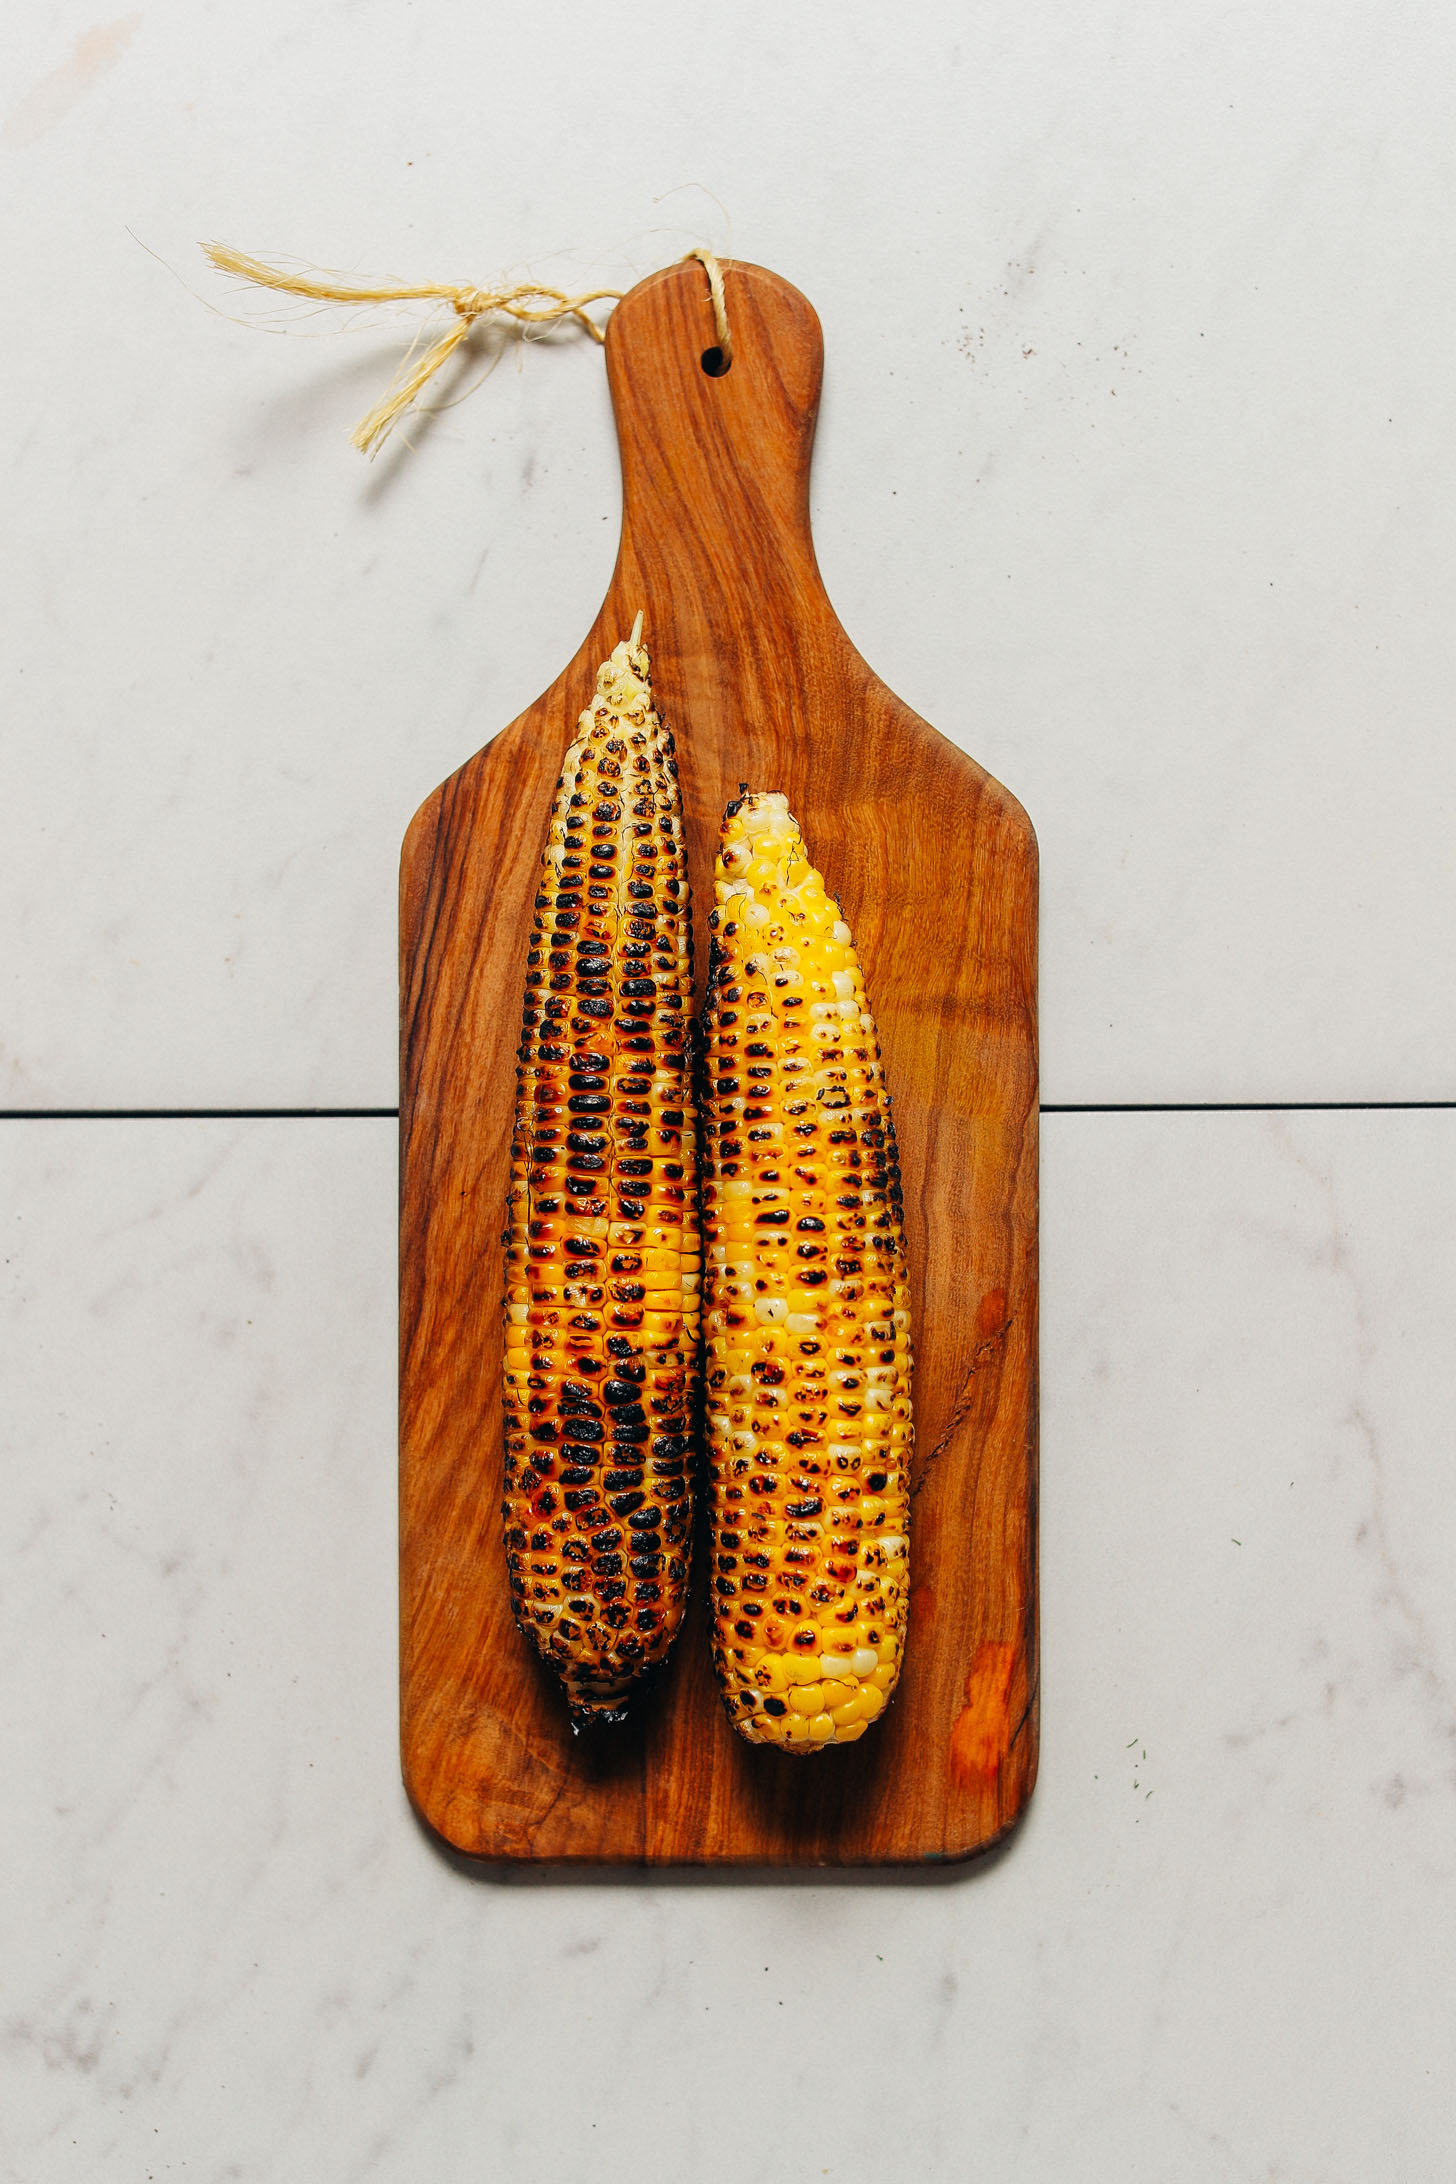 Two ears of grilled corn on a wood cutting board